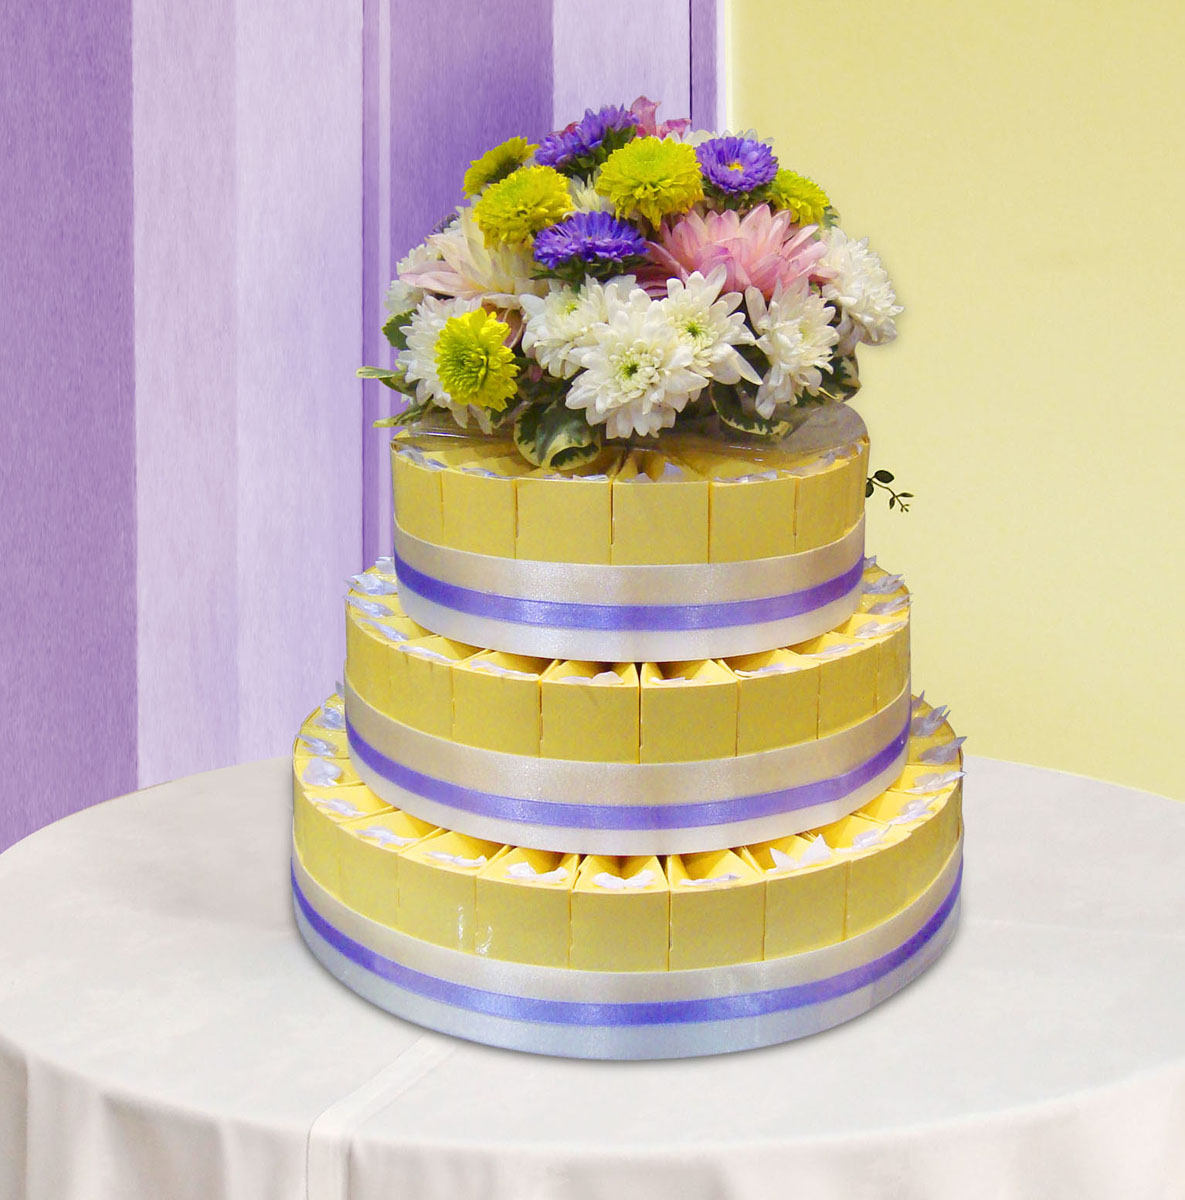 Party Olala: REAL FLOWER CAKE TOPPERS!